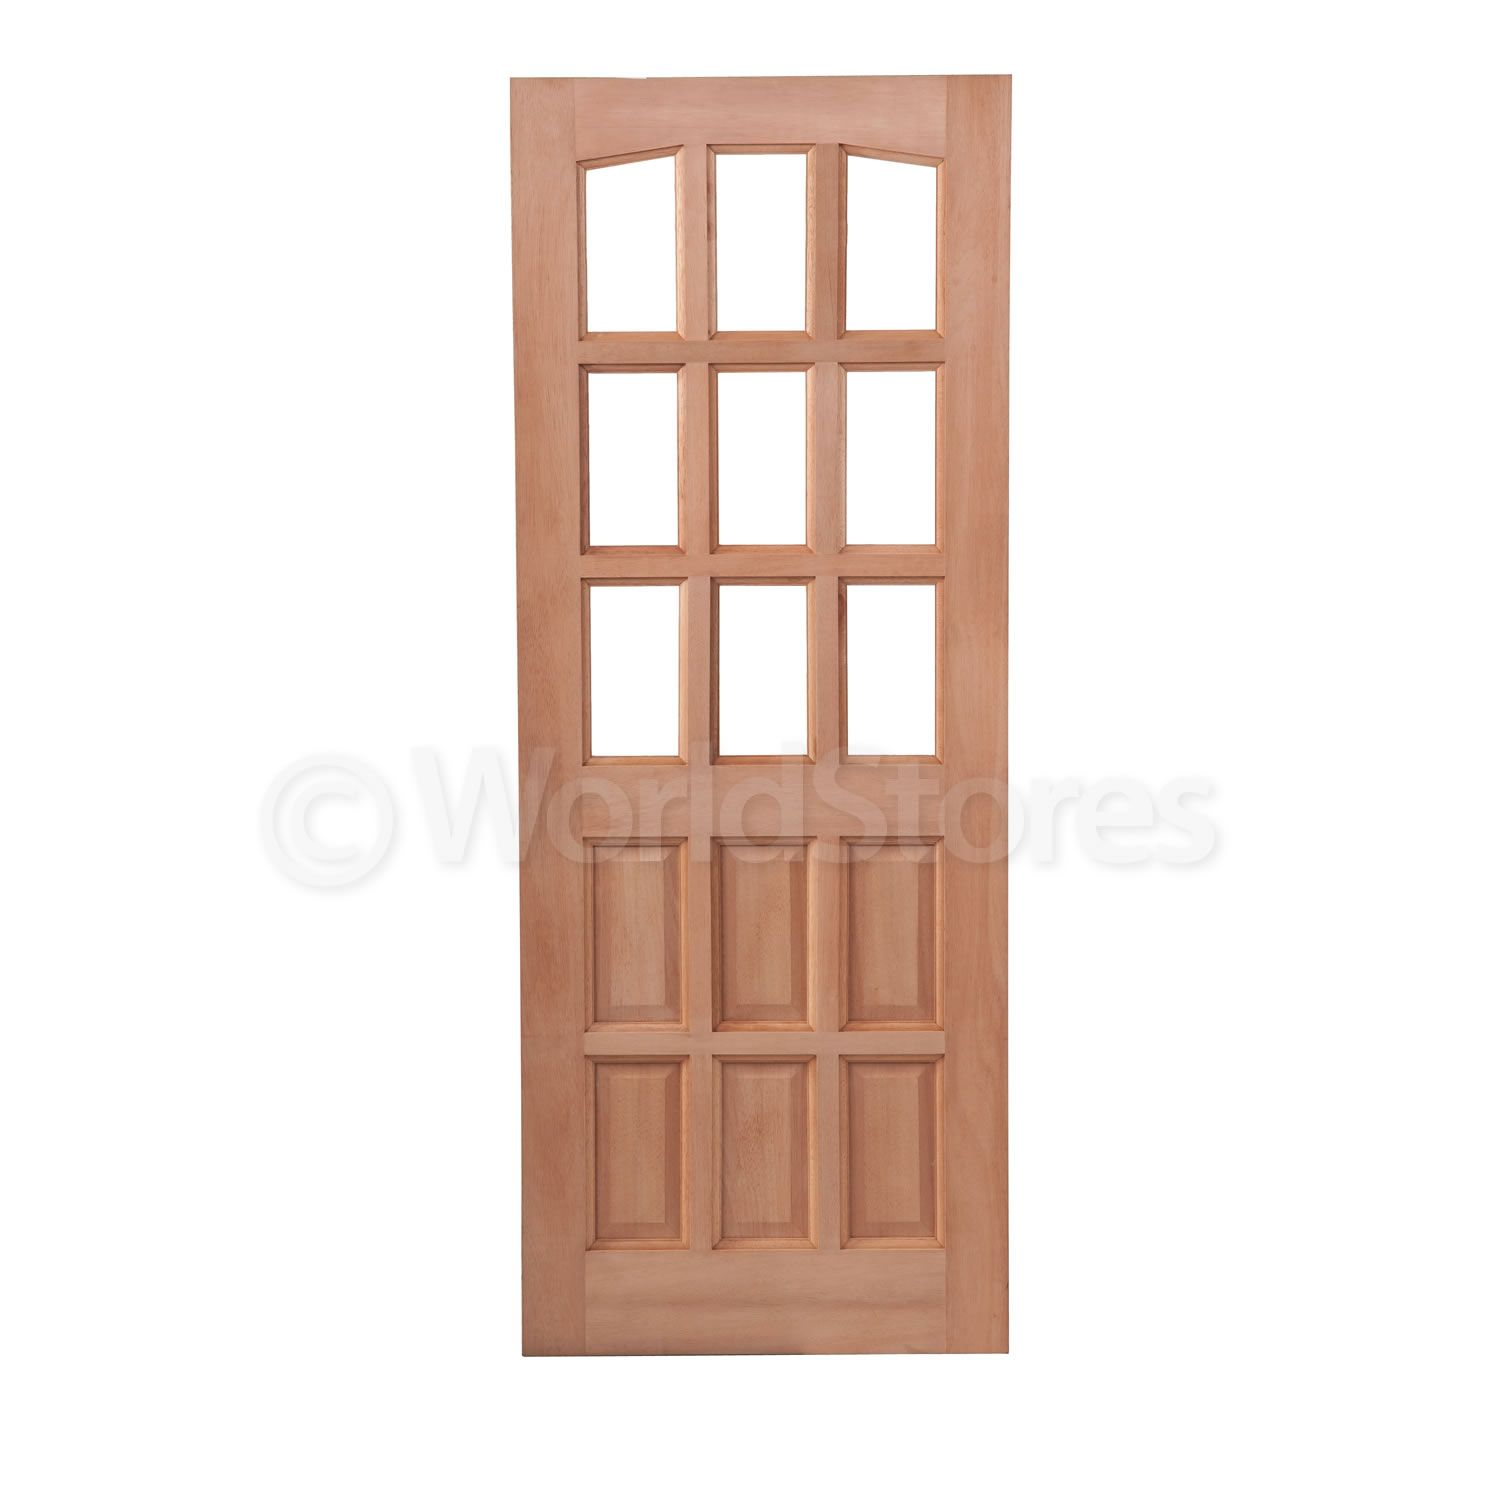 Lpd Alicante Exterior Door Hardwood 9 Lites 6 Panels 3